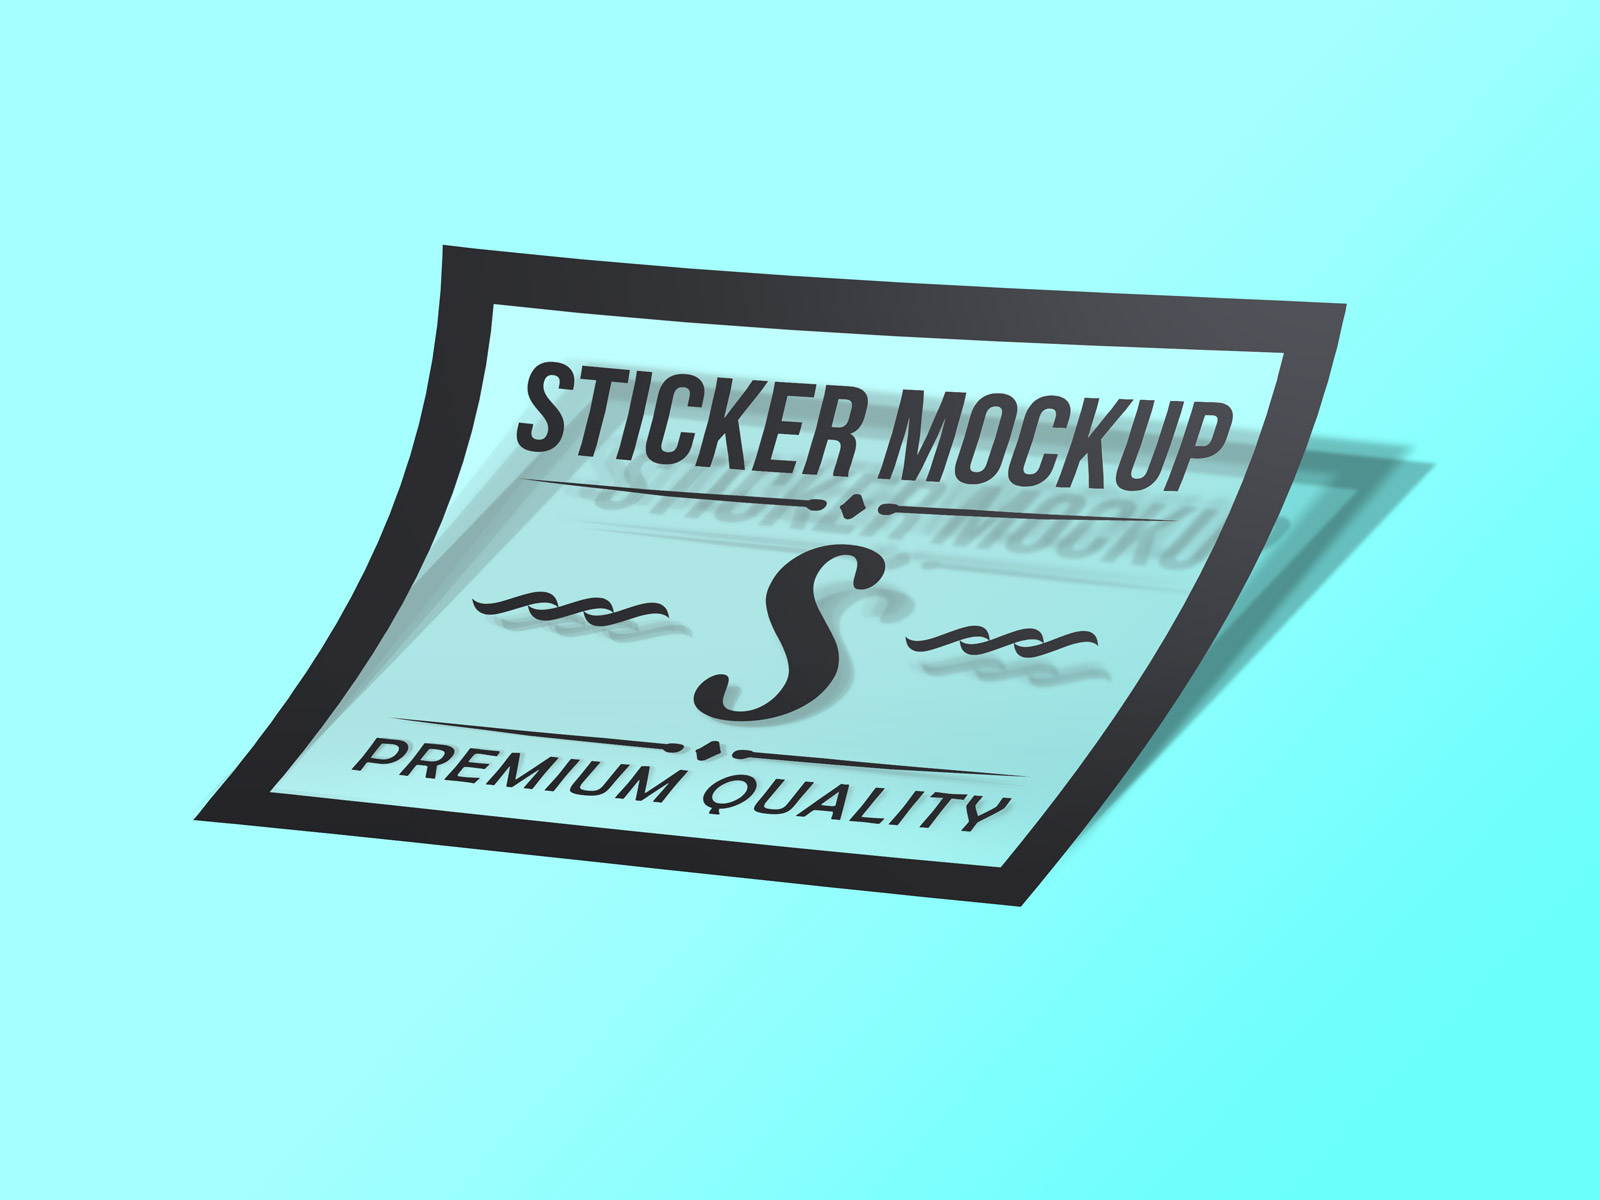 Free Photorealistic Transparent Sticker Mockup PSD - Good Mockups